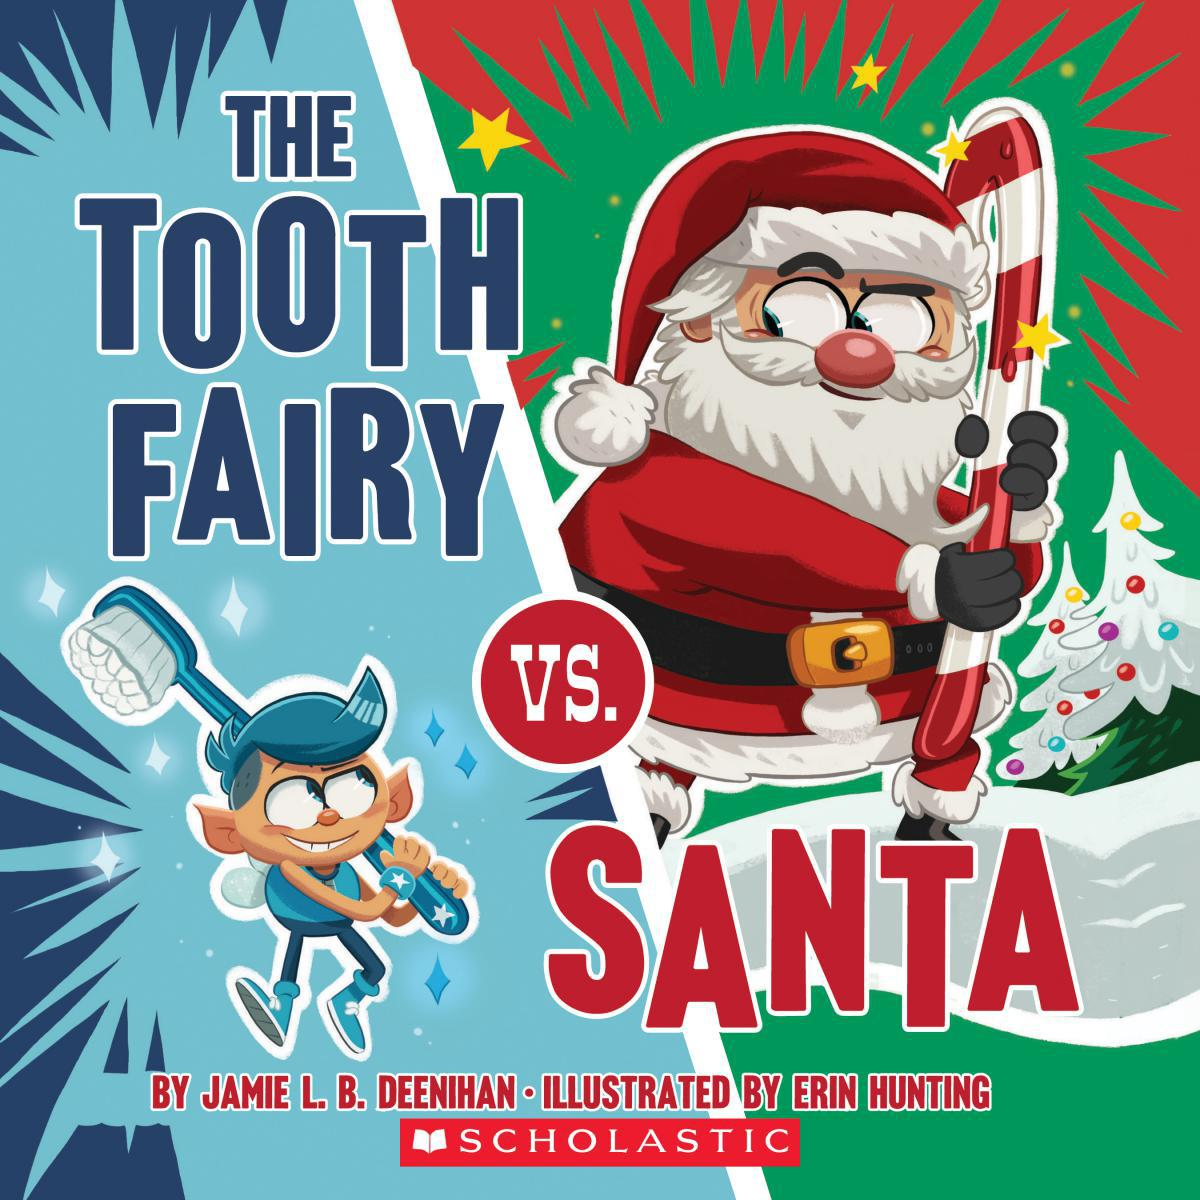 The Tooth Fairy vs. Santa